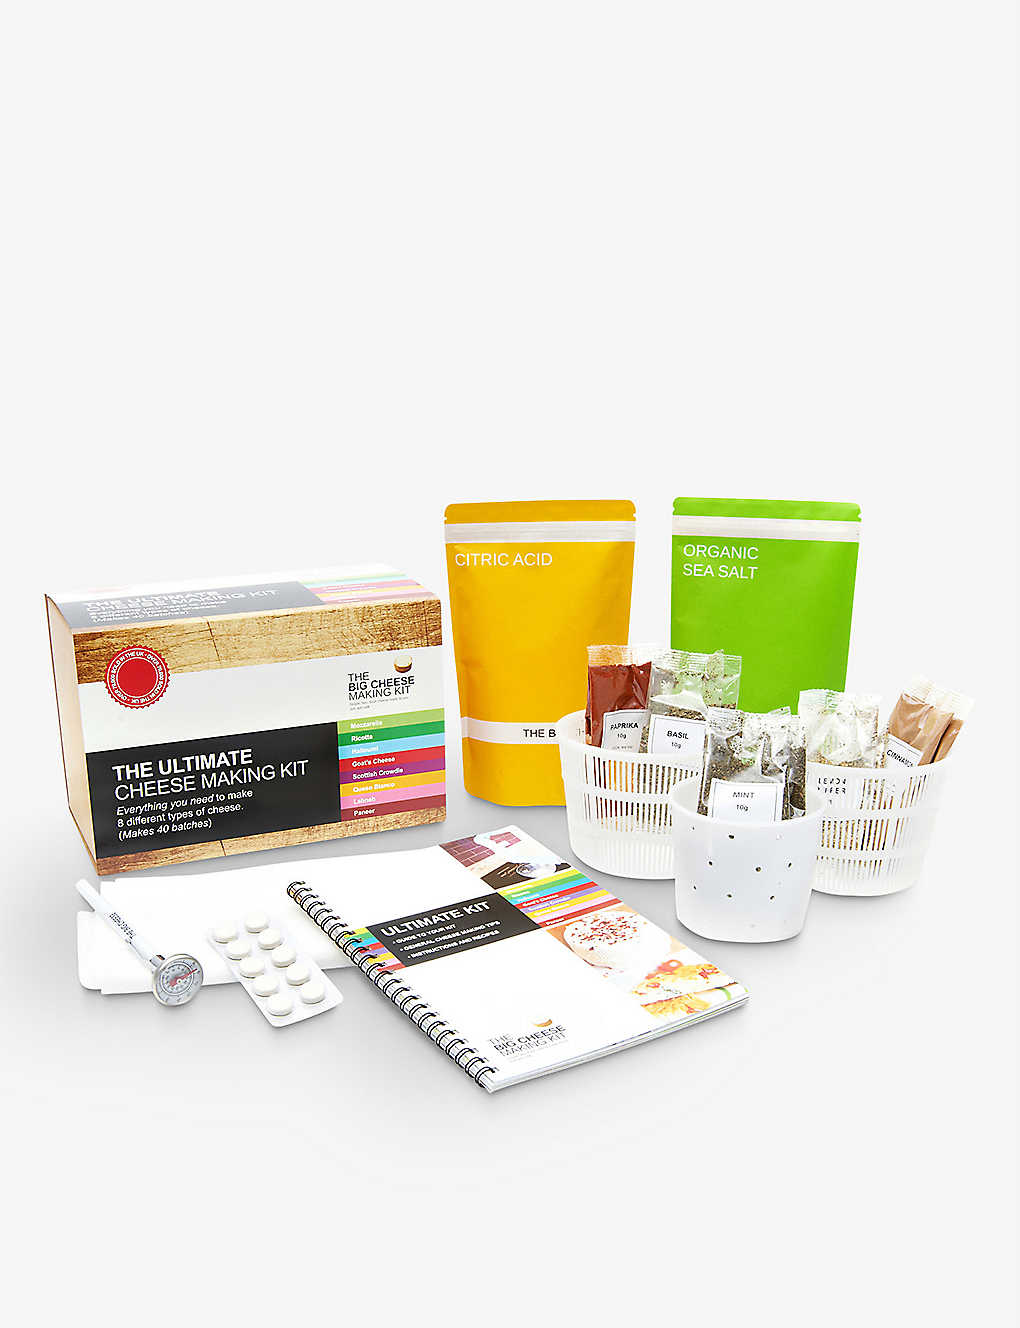 THE BIG CHEESE MAKING KIT: The ultimate cheese making kit